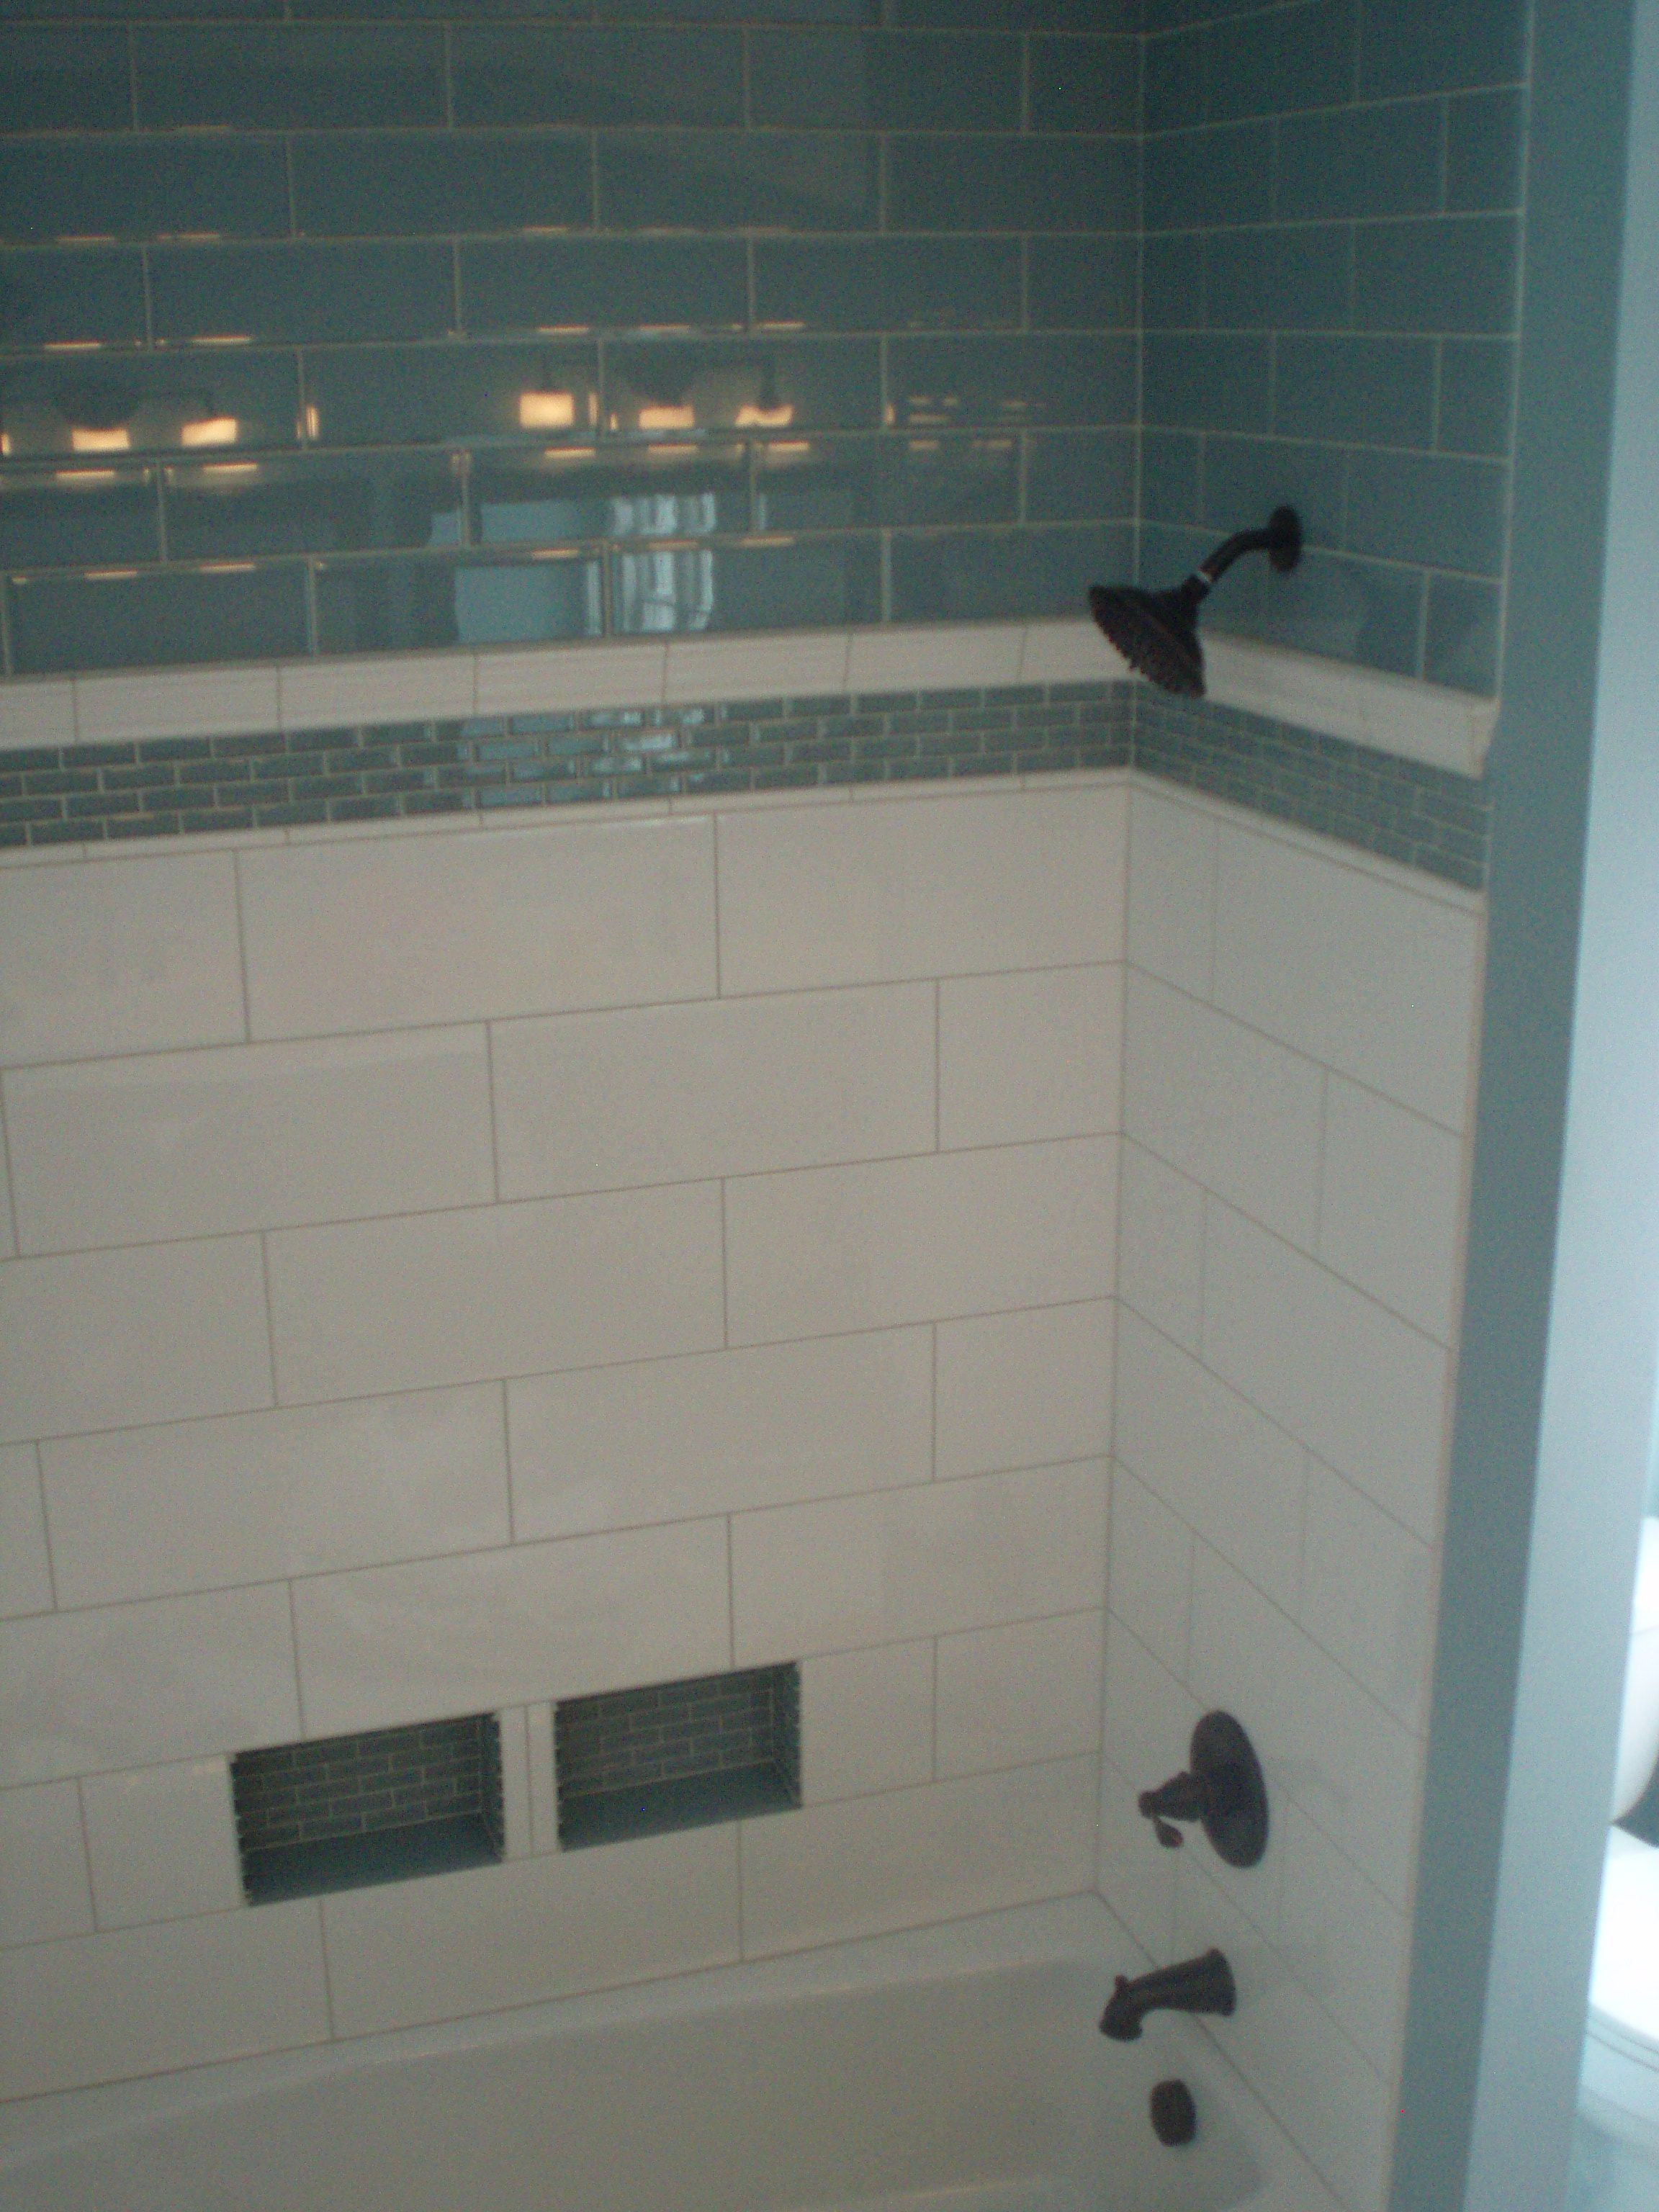 Porcelain and glass subway tile are classic the oversized tiles porcelain and glass subway tile are classic the oversized tiles minimize grout lines to make future cleaning easier for the family that uses well water dailygadgetfo Images